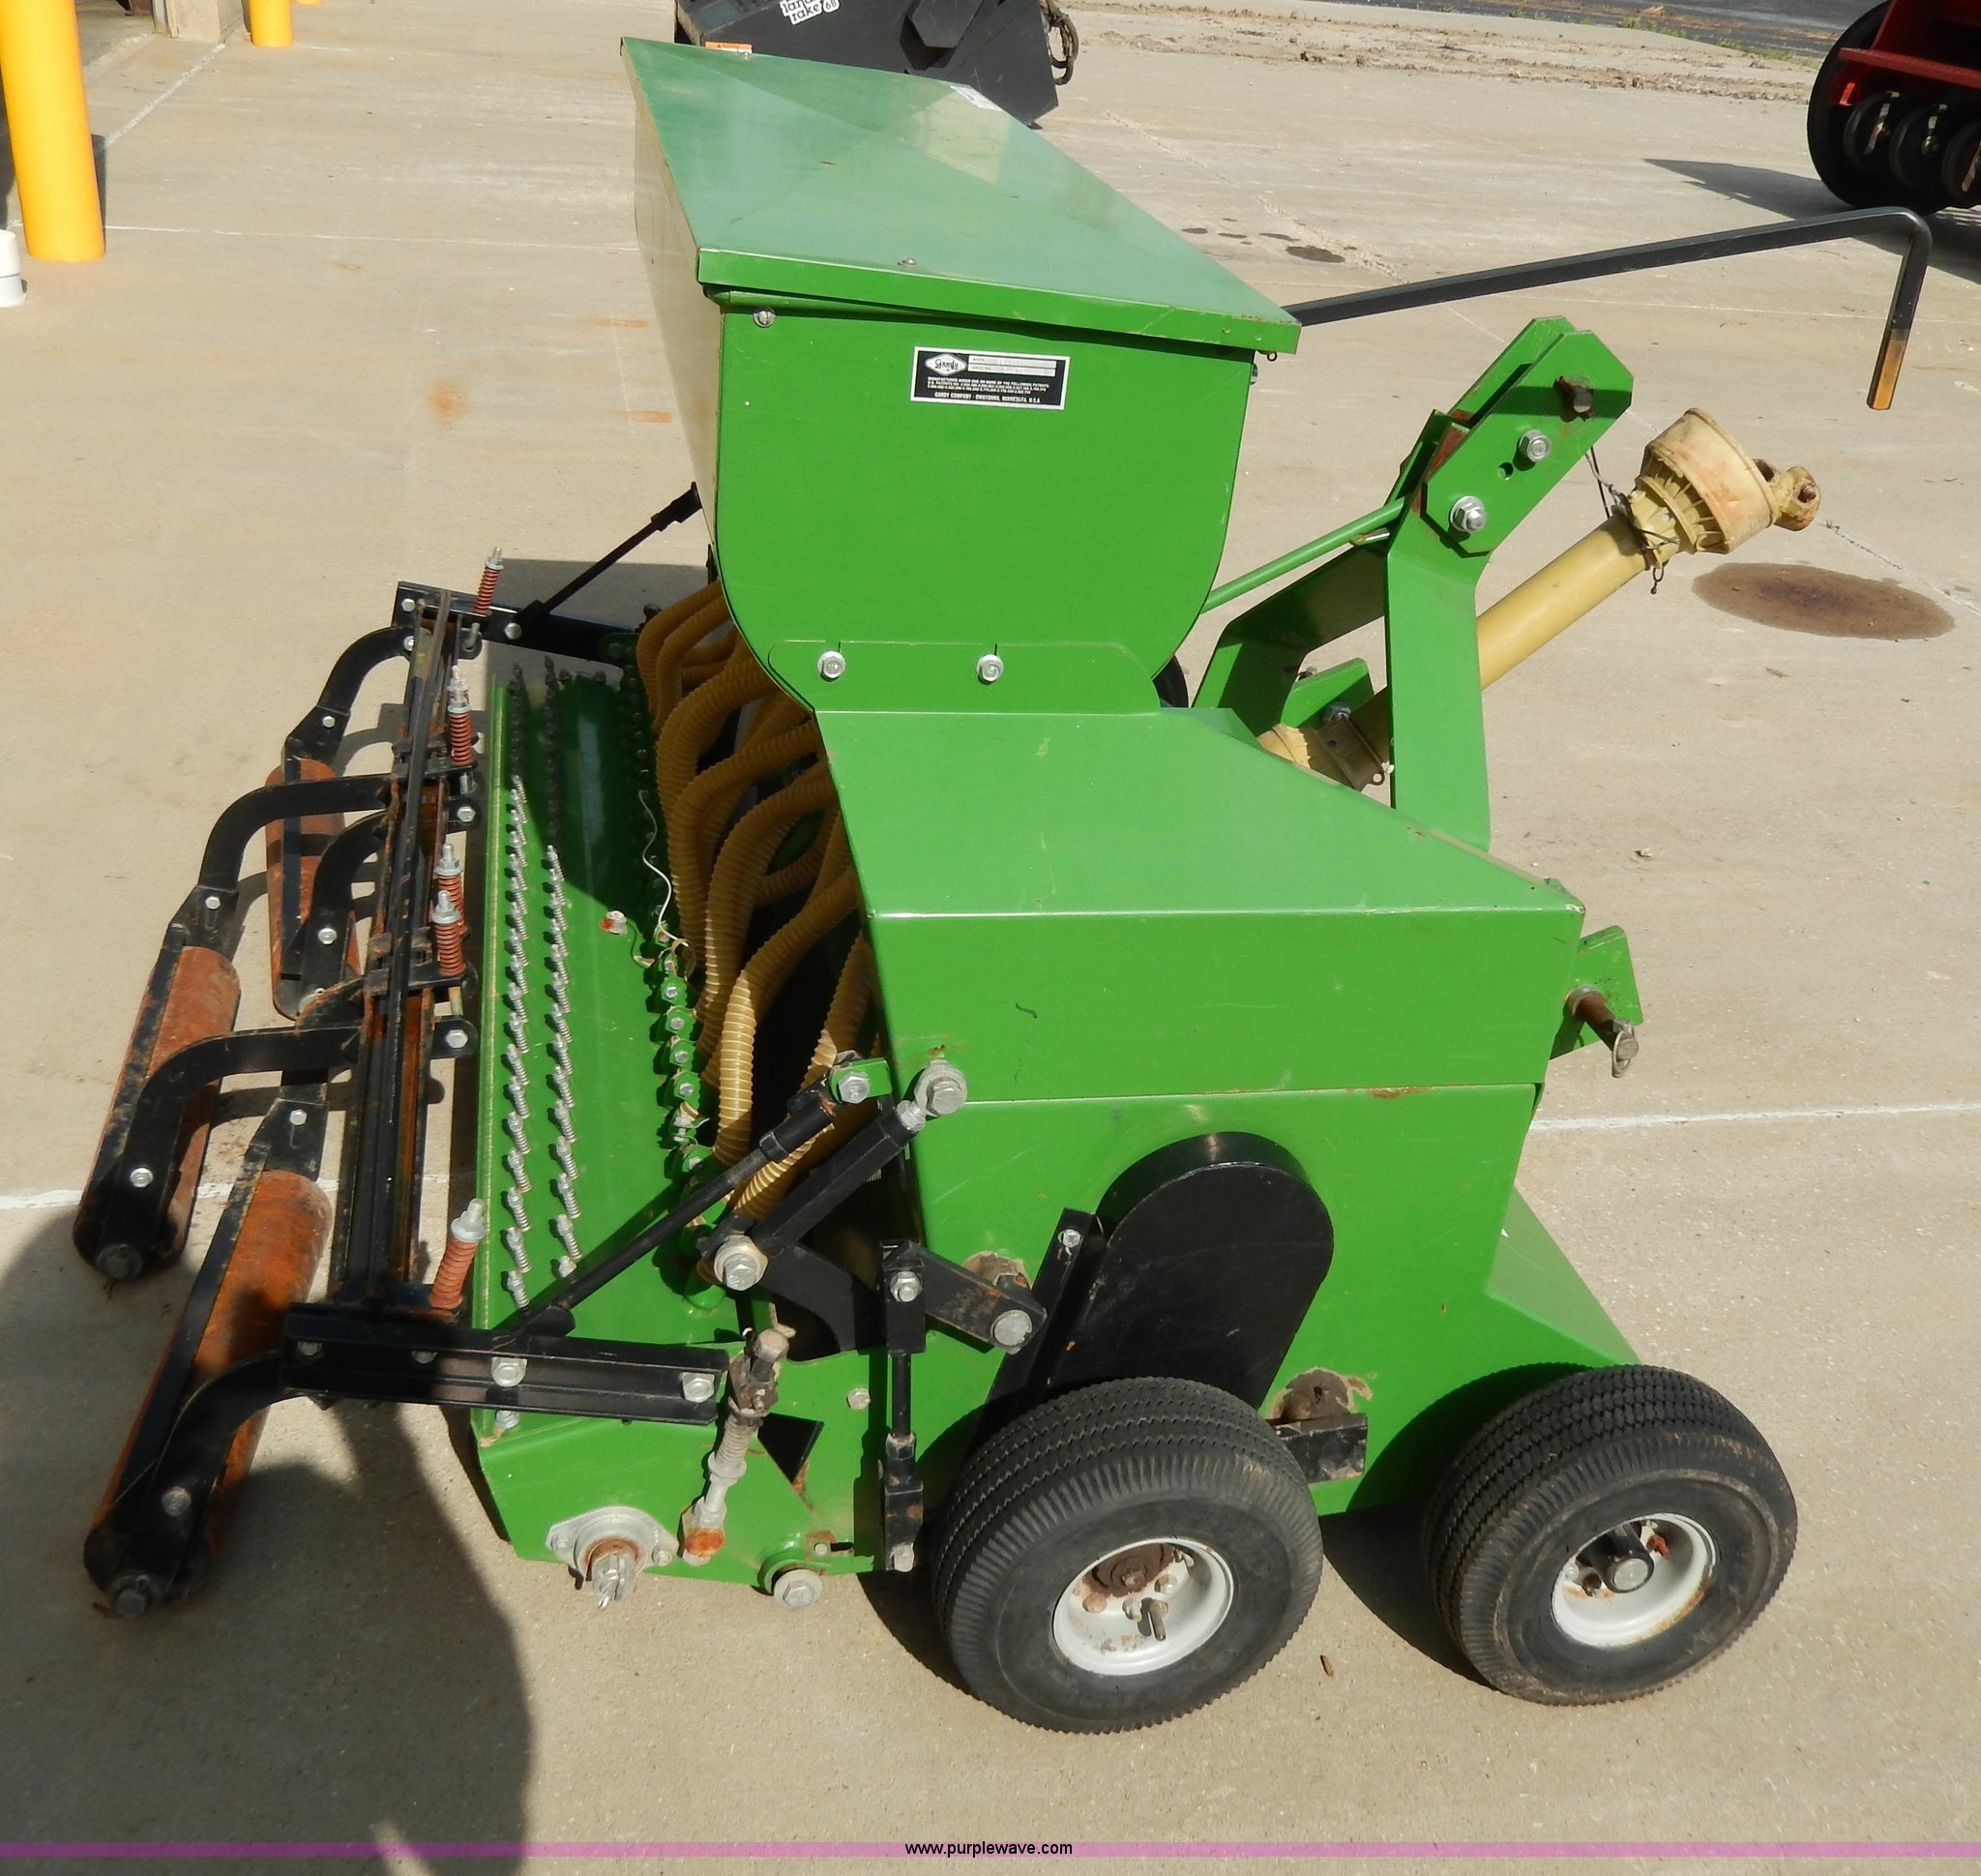 Gandy Slit grass seeder | Item W9775 | SOLD! May 29 Midwest